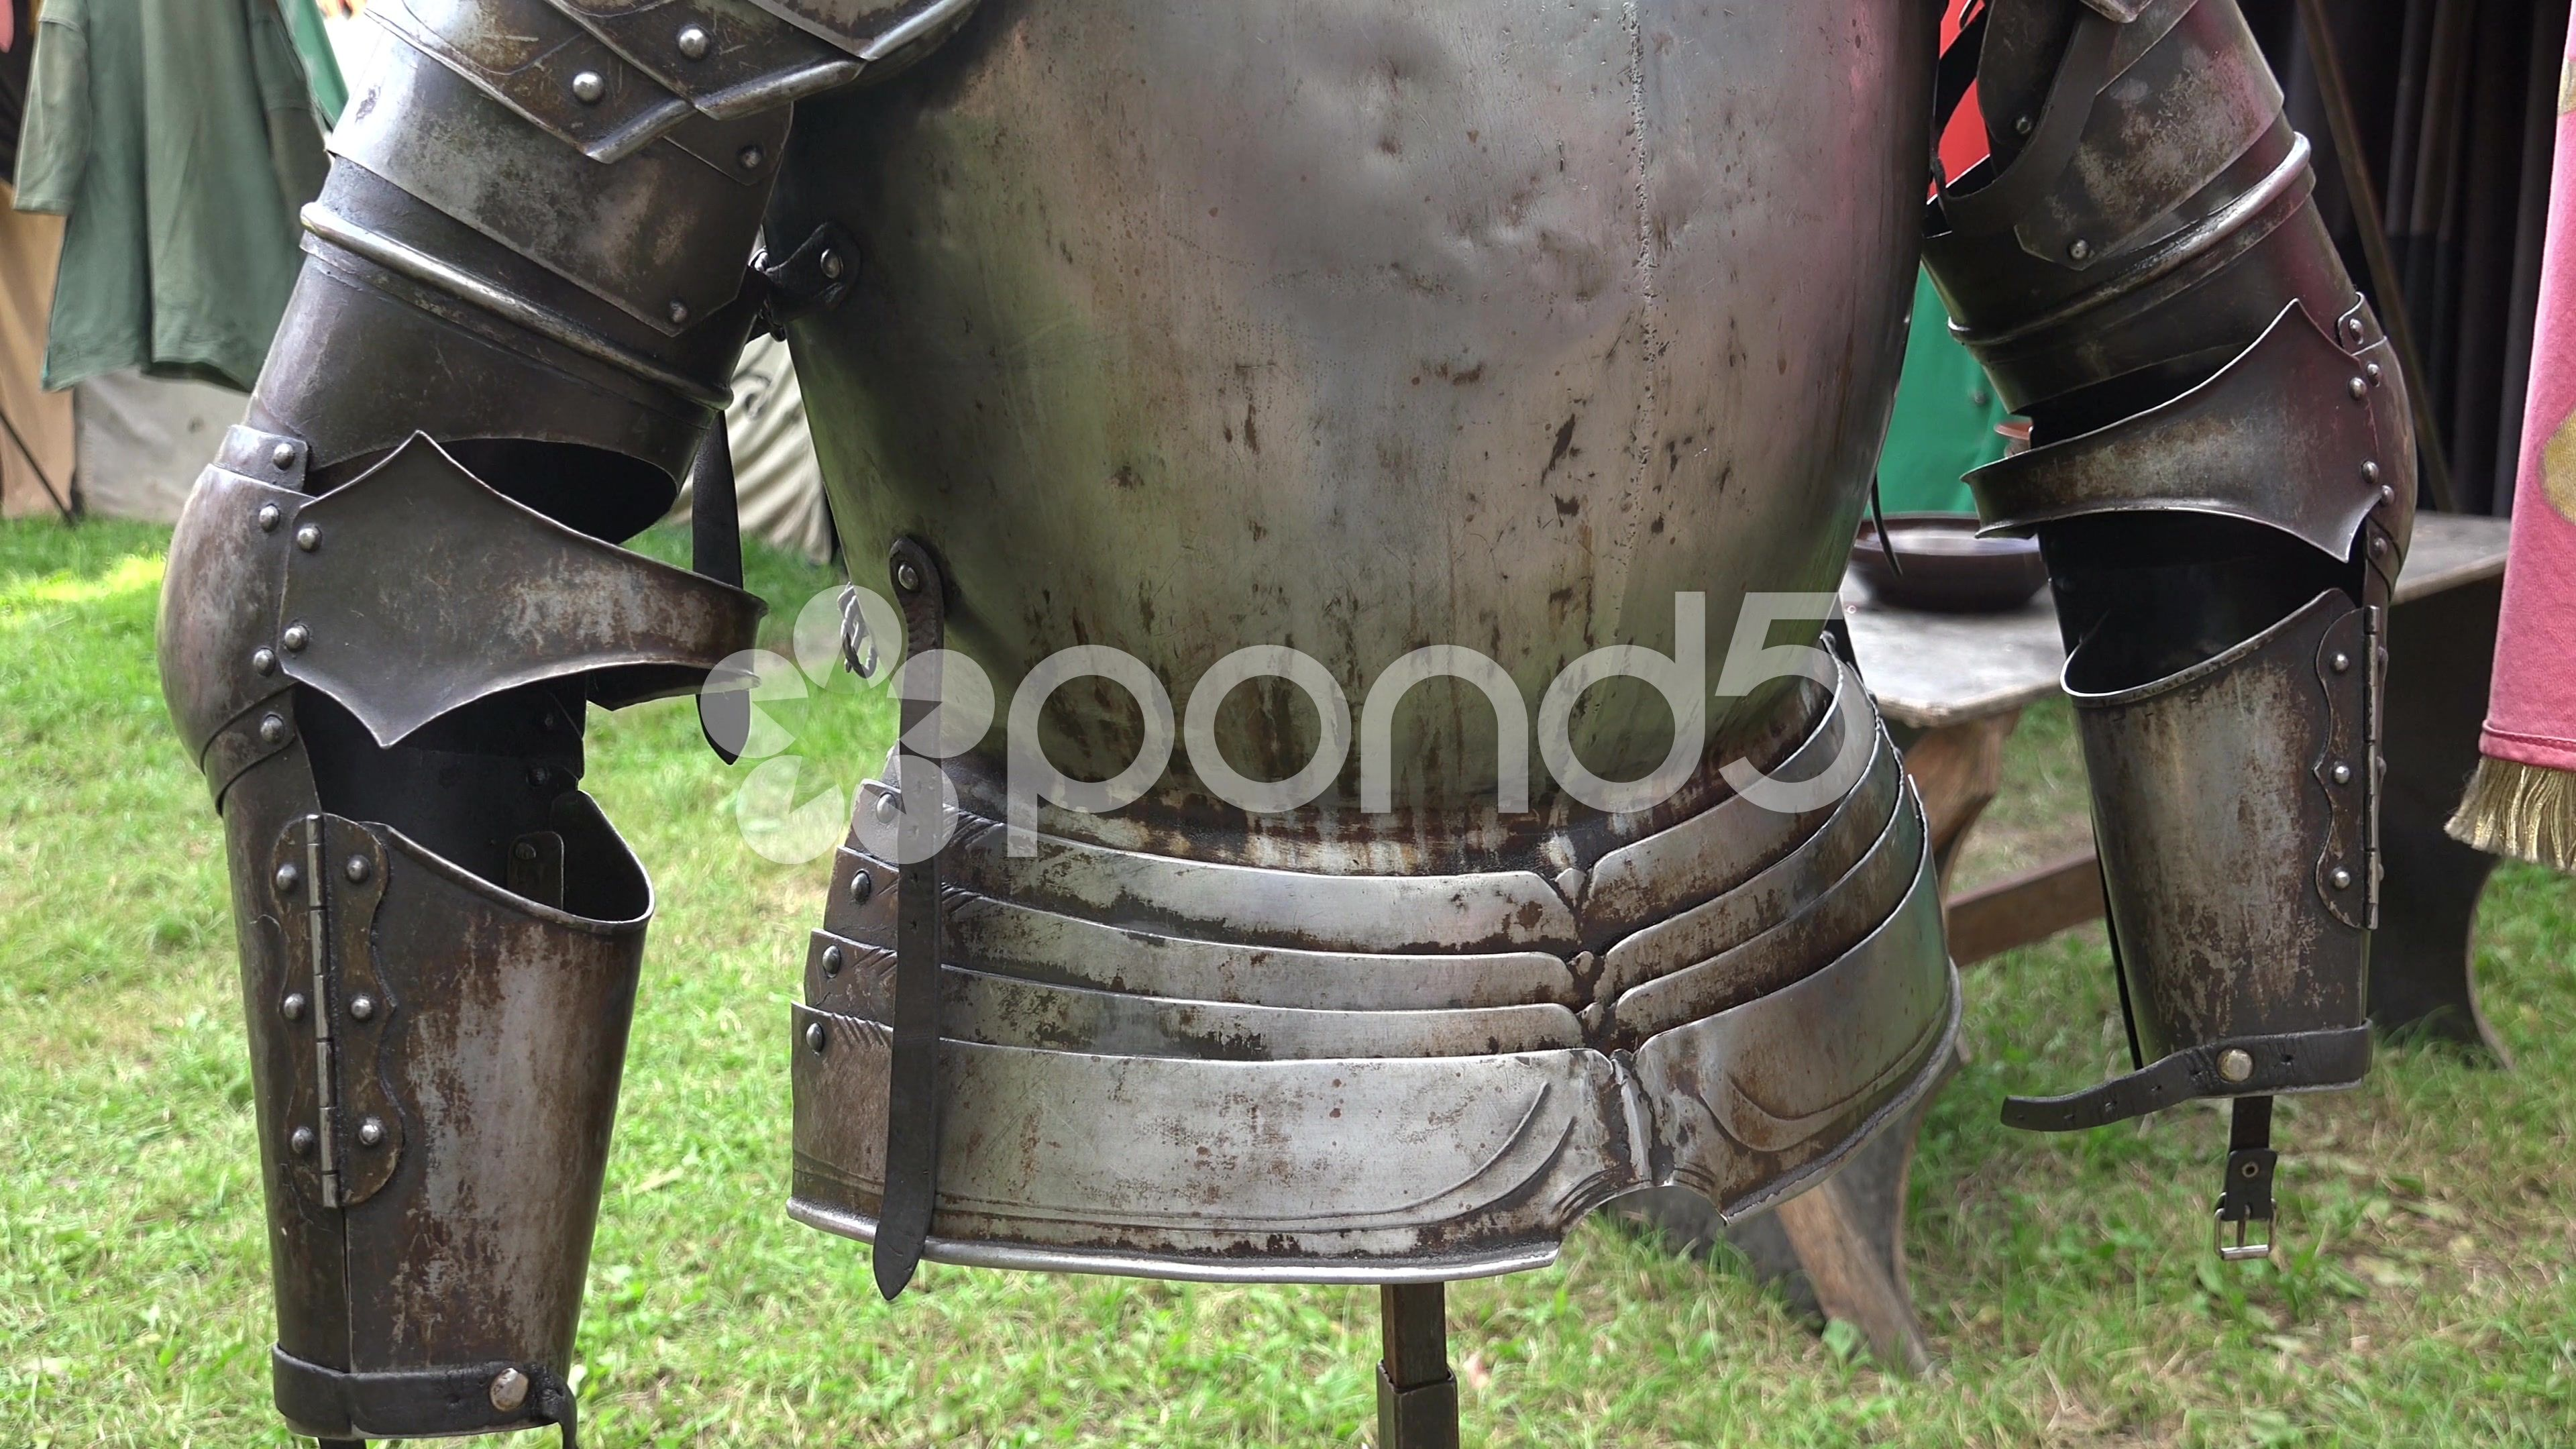 4k Knight's armor close up tilt at medieval pageant event - Stock Footage | by Beckhusen